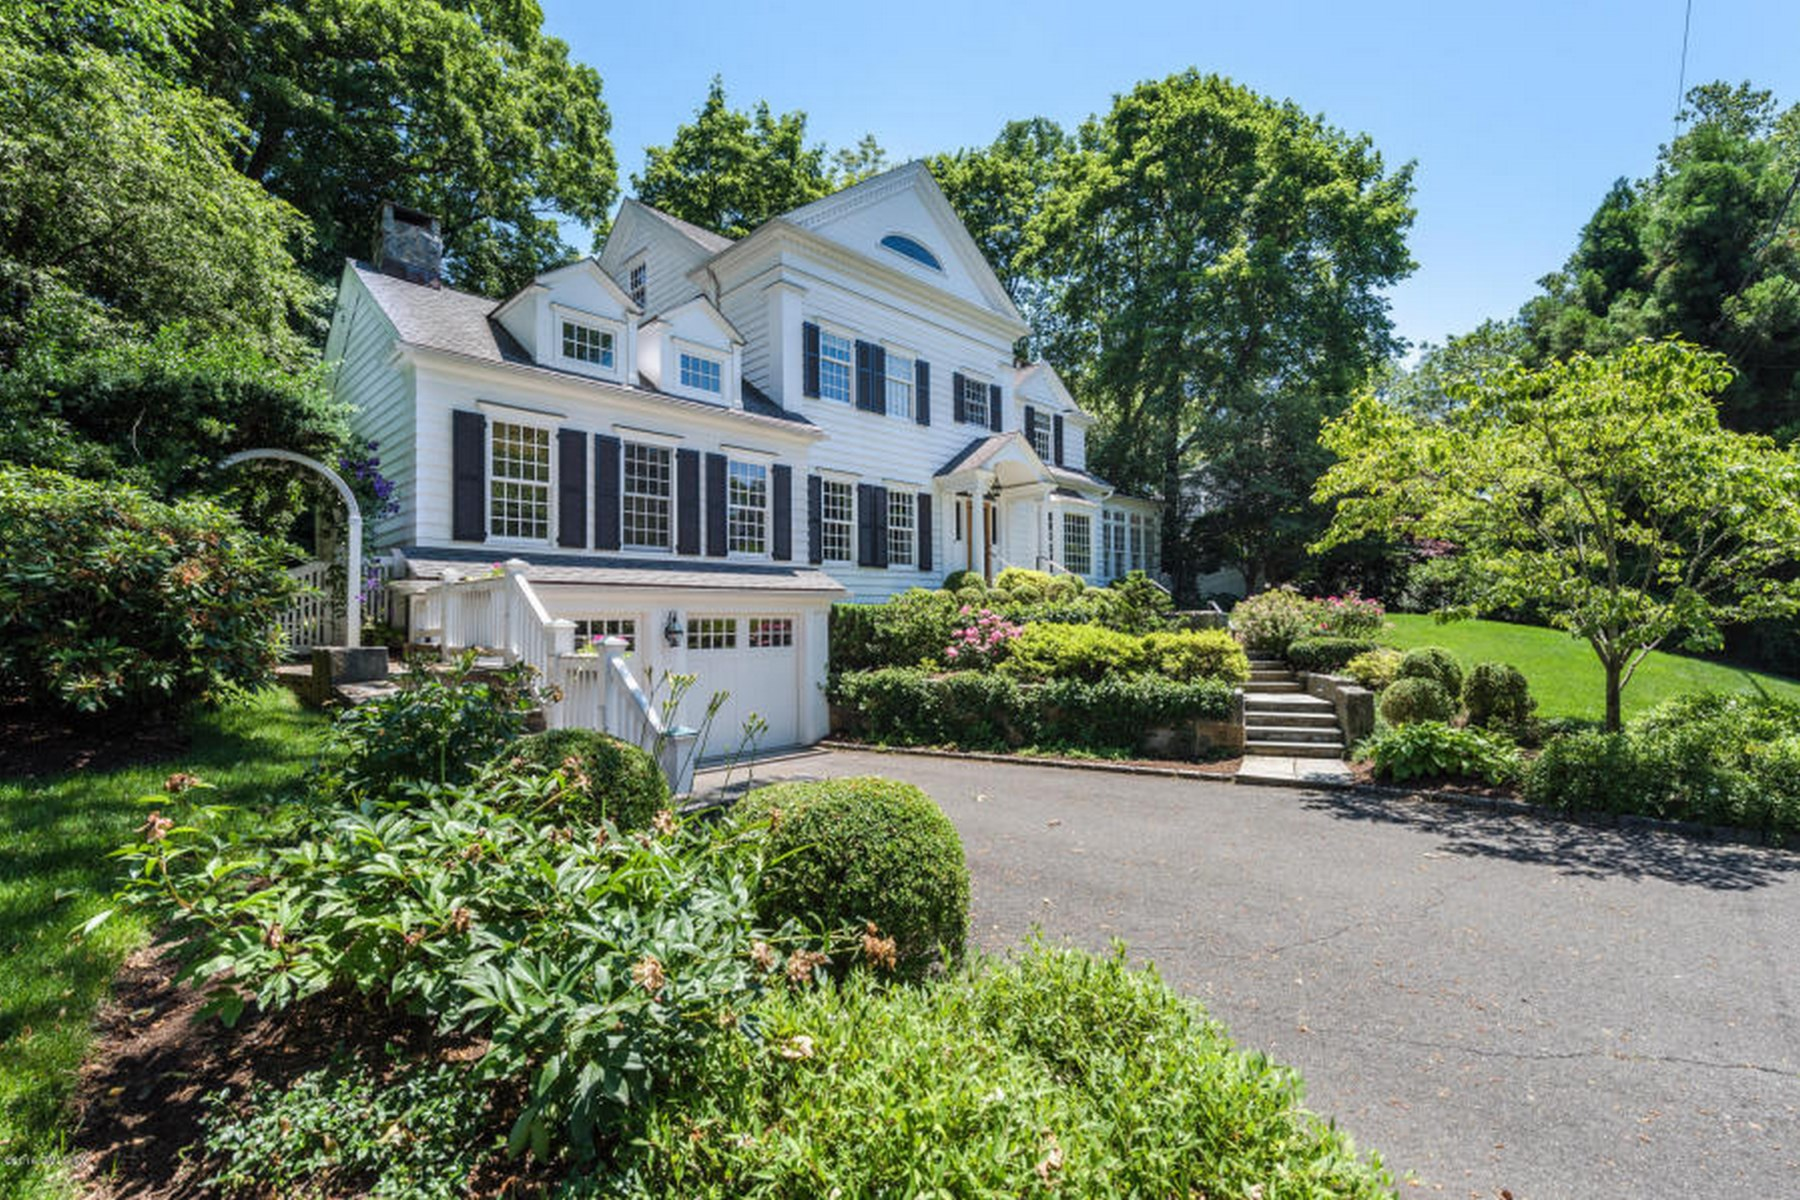 Single Family Home for Sale at Coveted Riverside 19 Stoney Ridge Lane Riverside, Connecticut 06878 United States